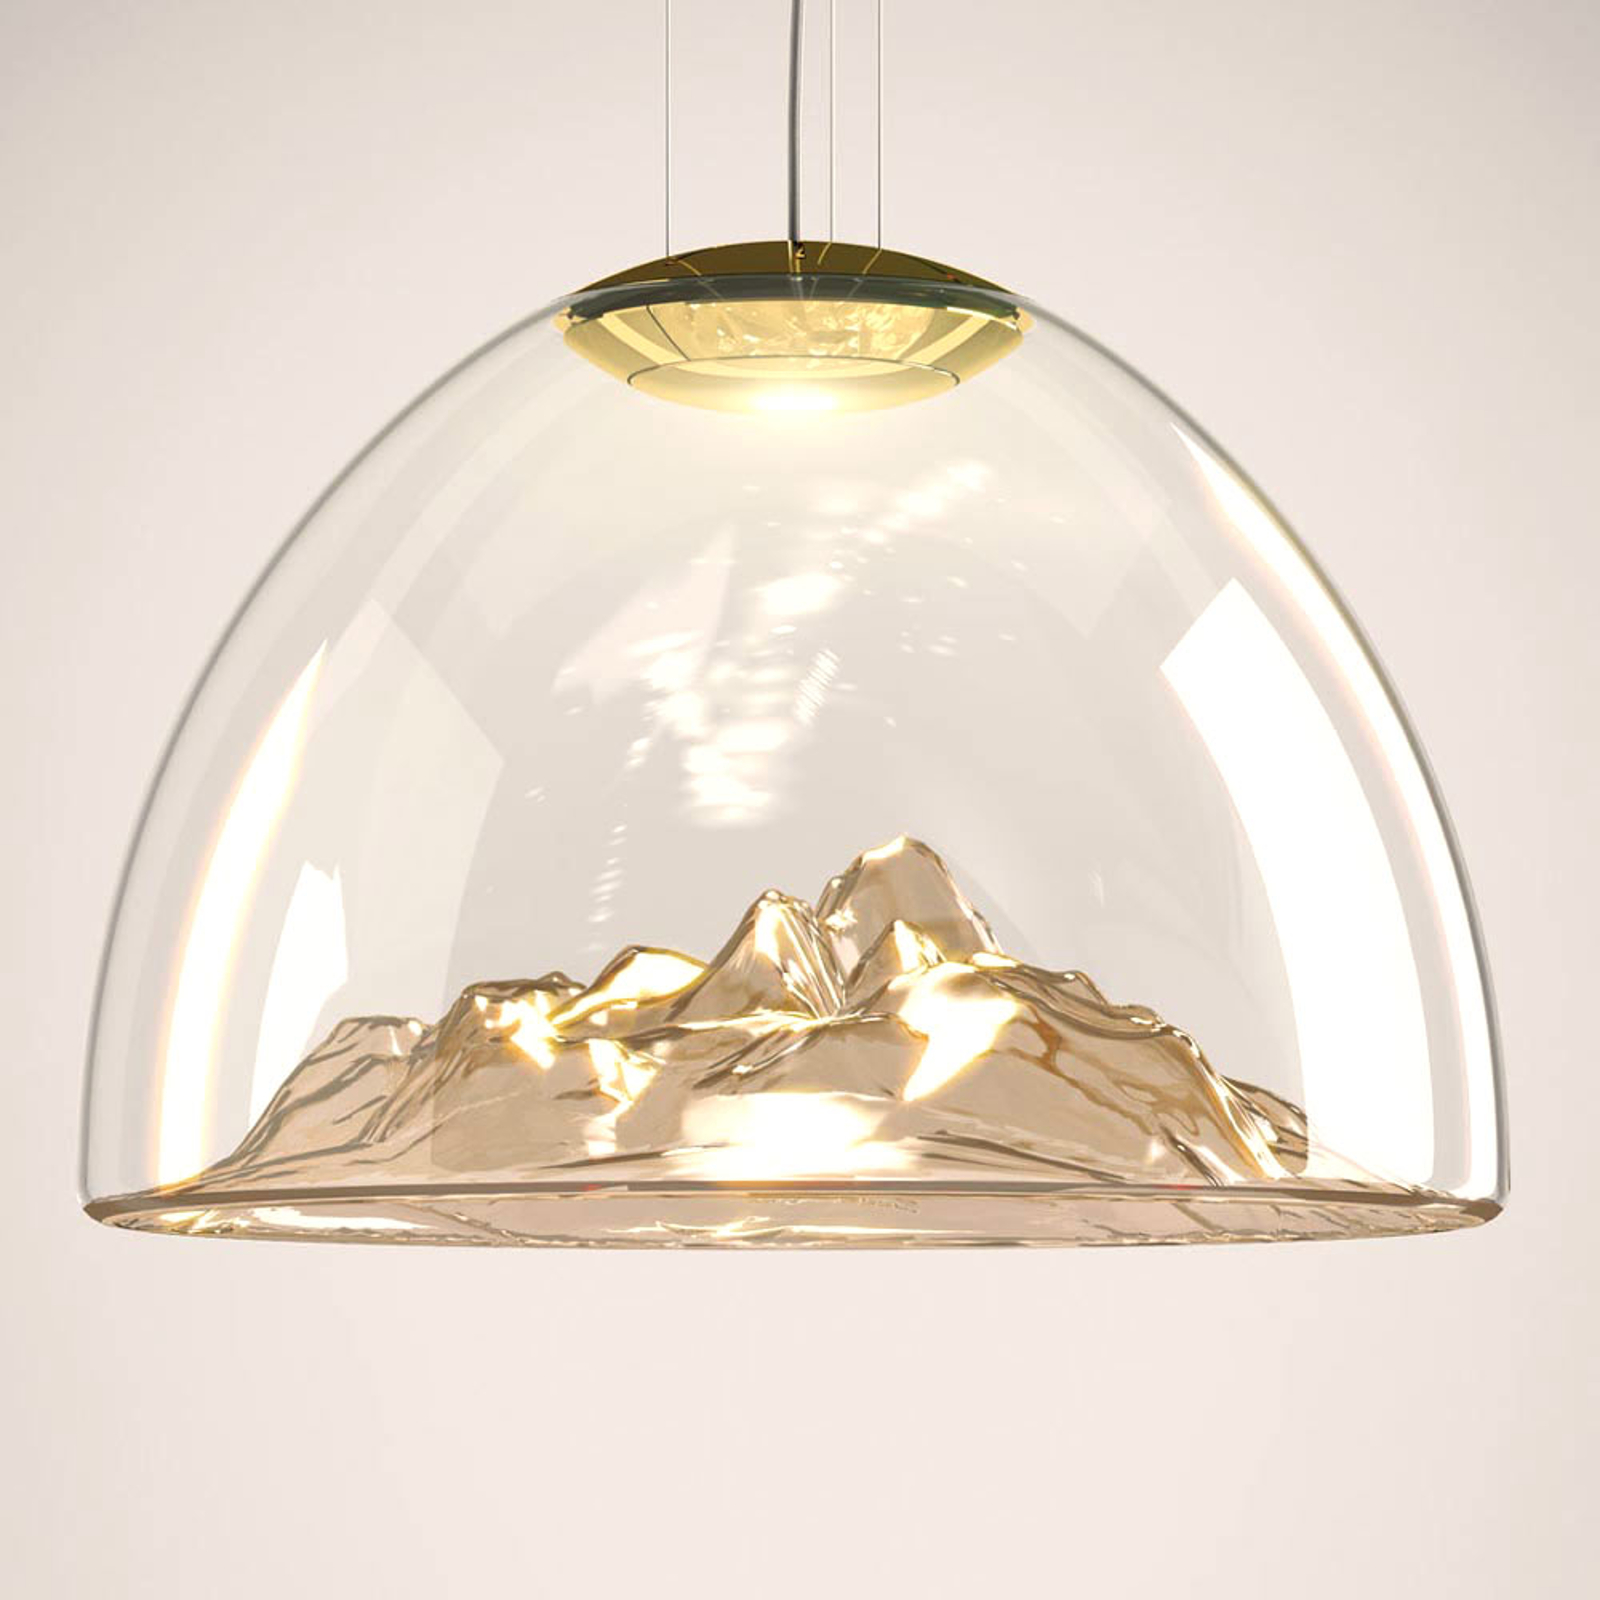 Axolight Mountain View LED hanglamp amber-goud